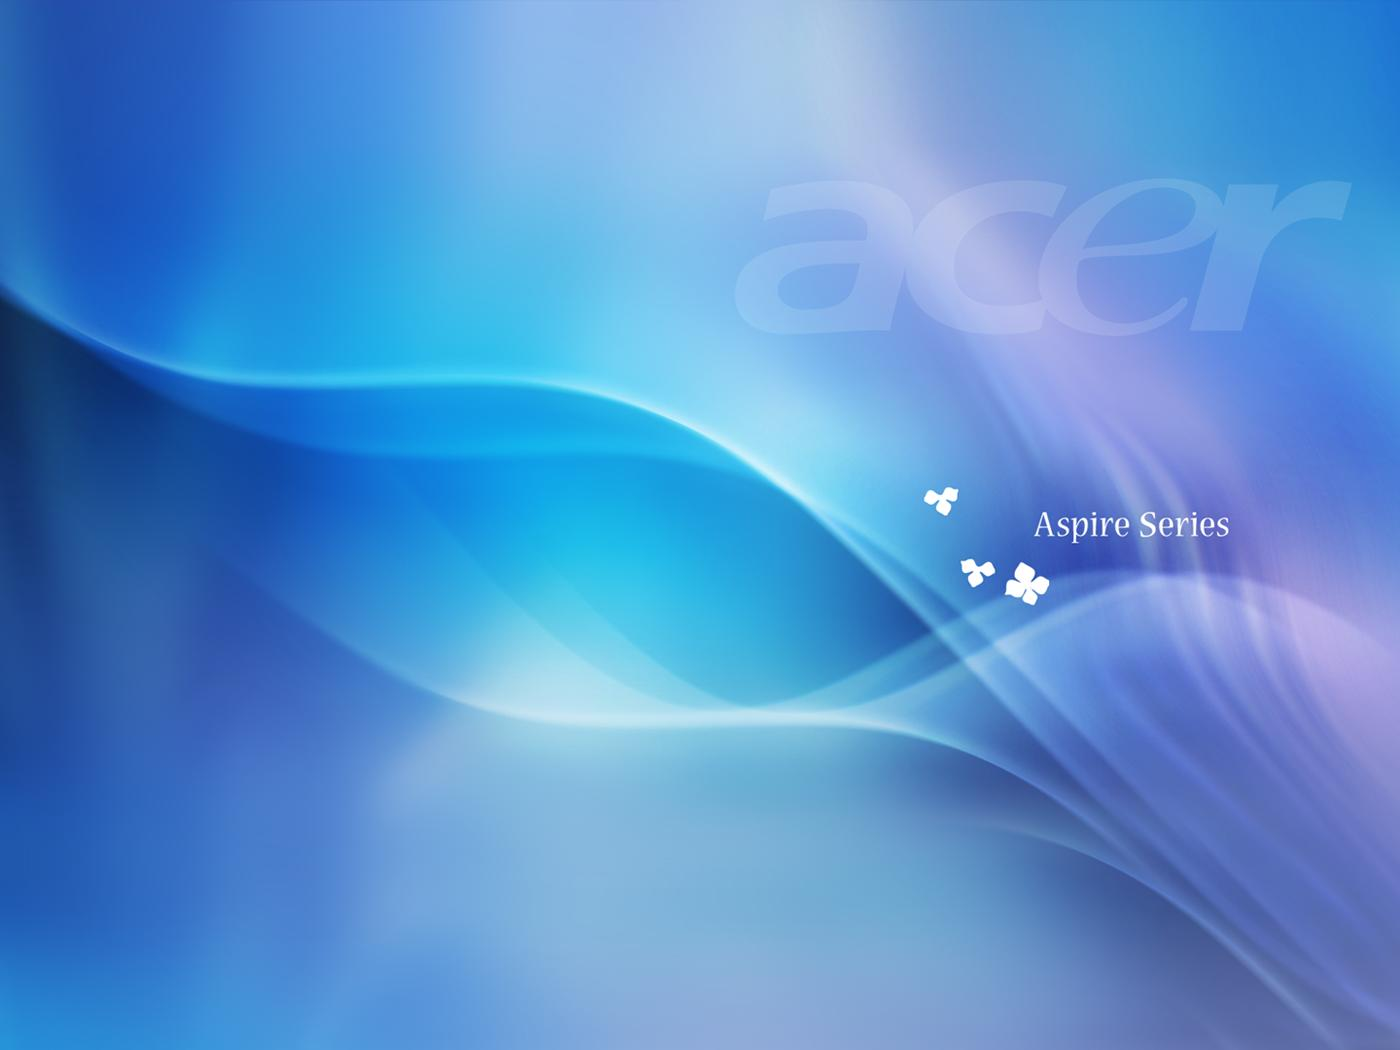 Acer wallpaper for windows 8. 1 wallpapersafari.